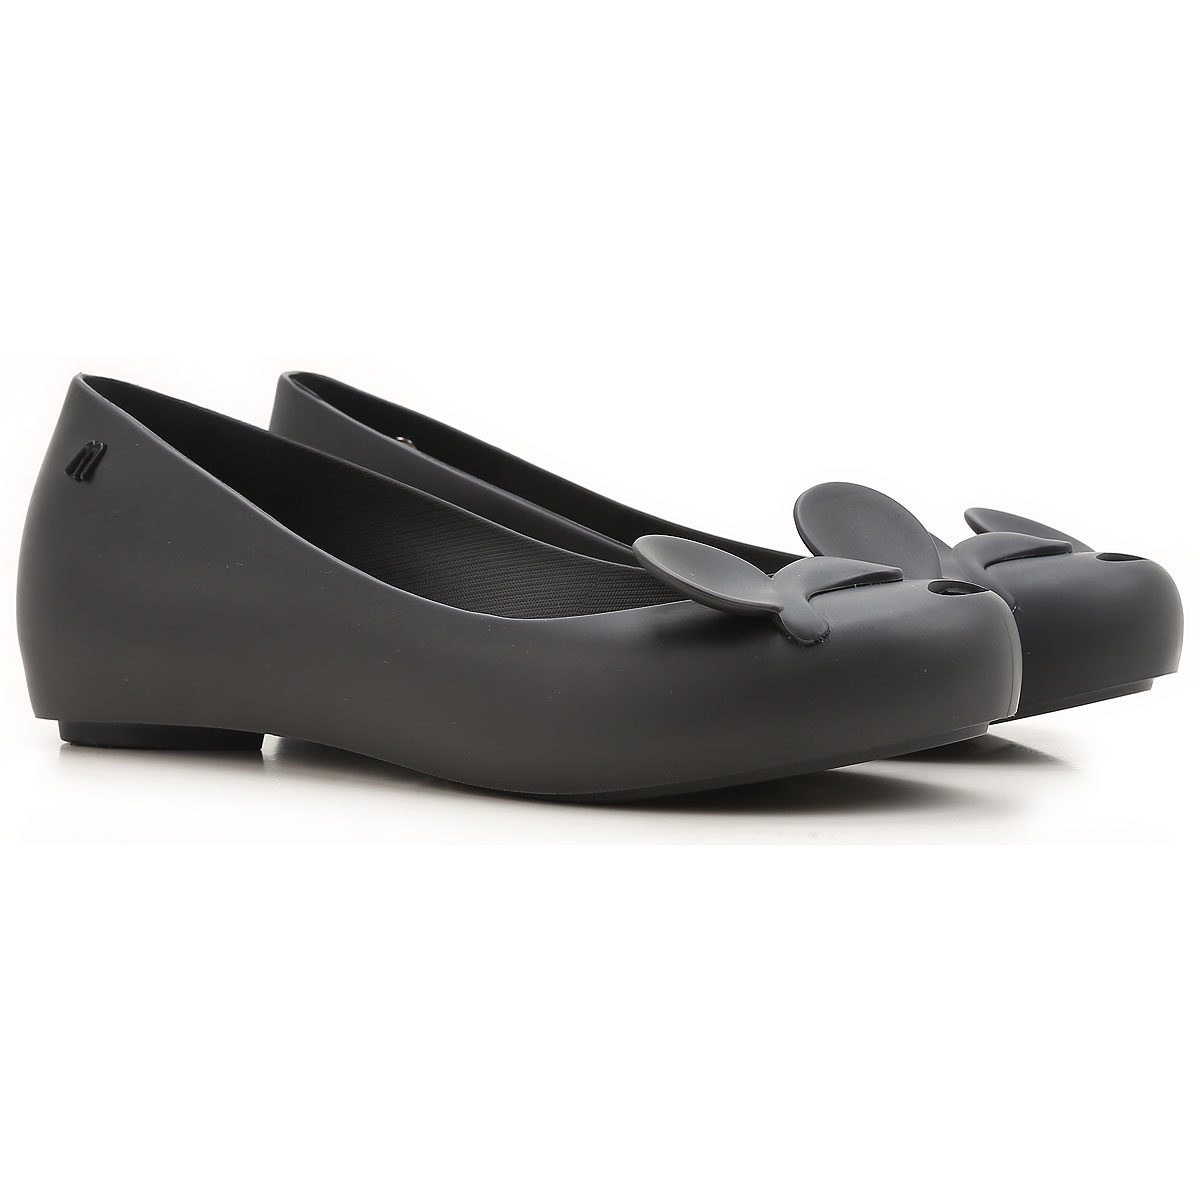 Melissa Ballet Flats Ballerina Shoes for Women On Sale in Outlet, Melissa Mickey, Black, PVC, 2019, USA 5 - EUR 35/36 USA 6 - EUR 37